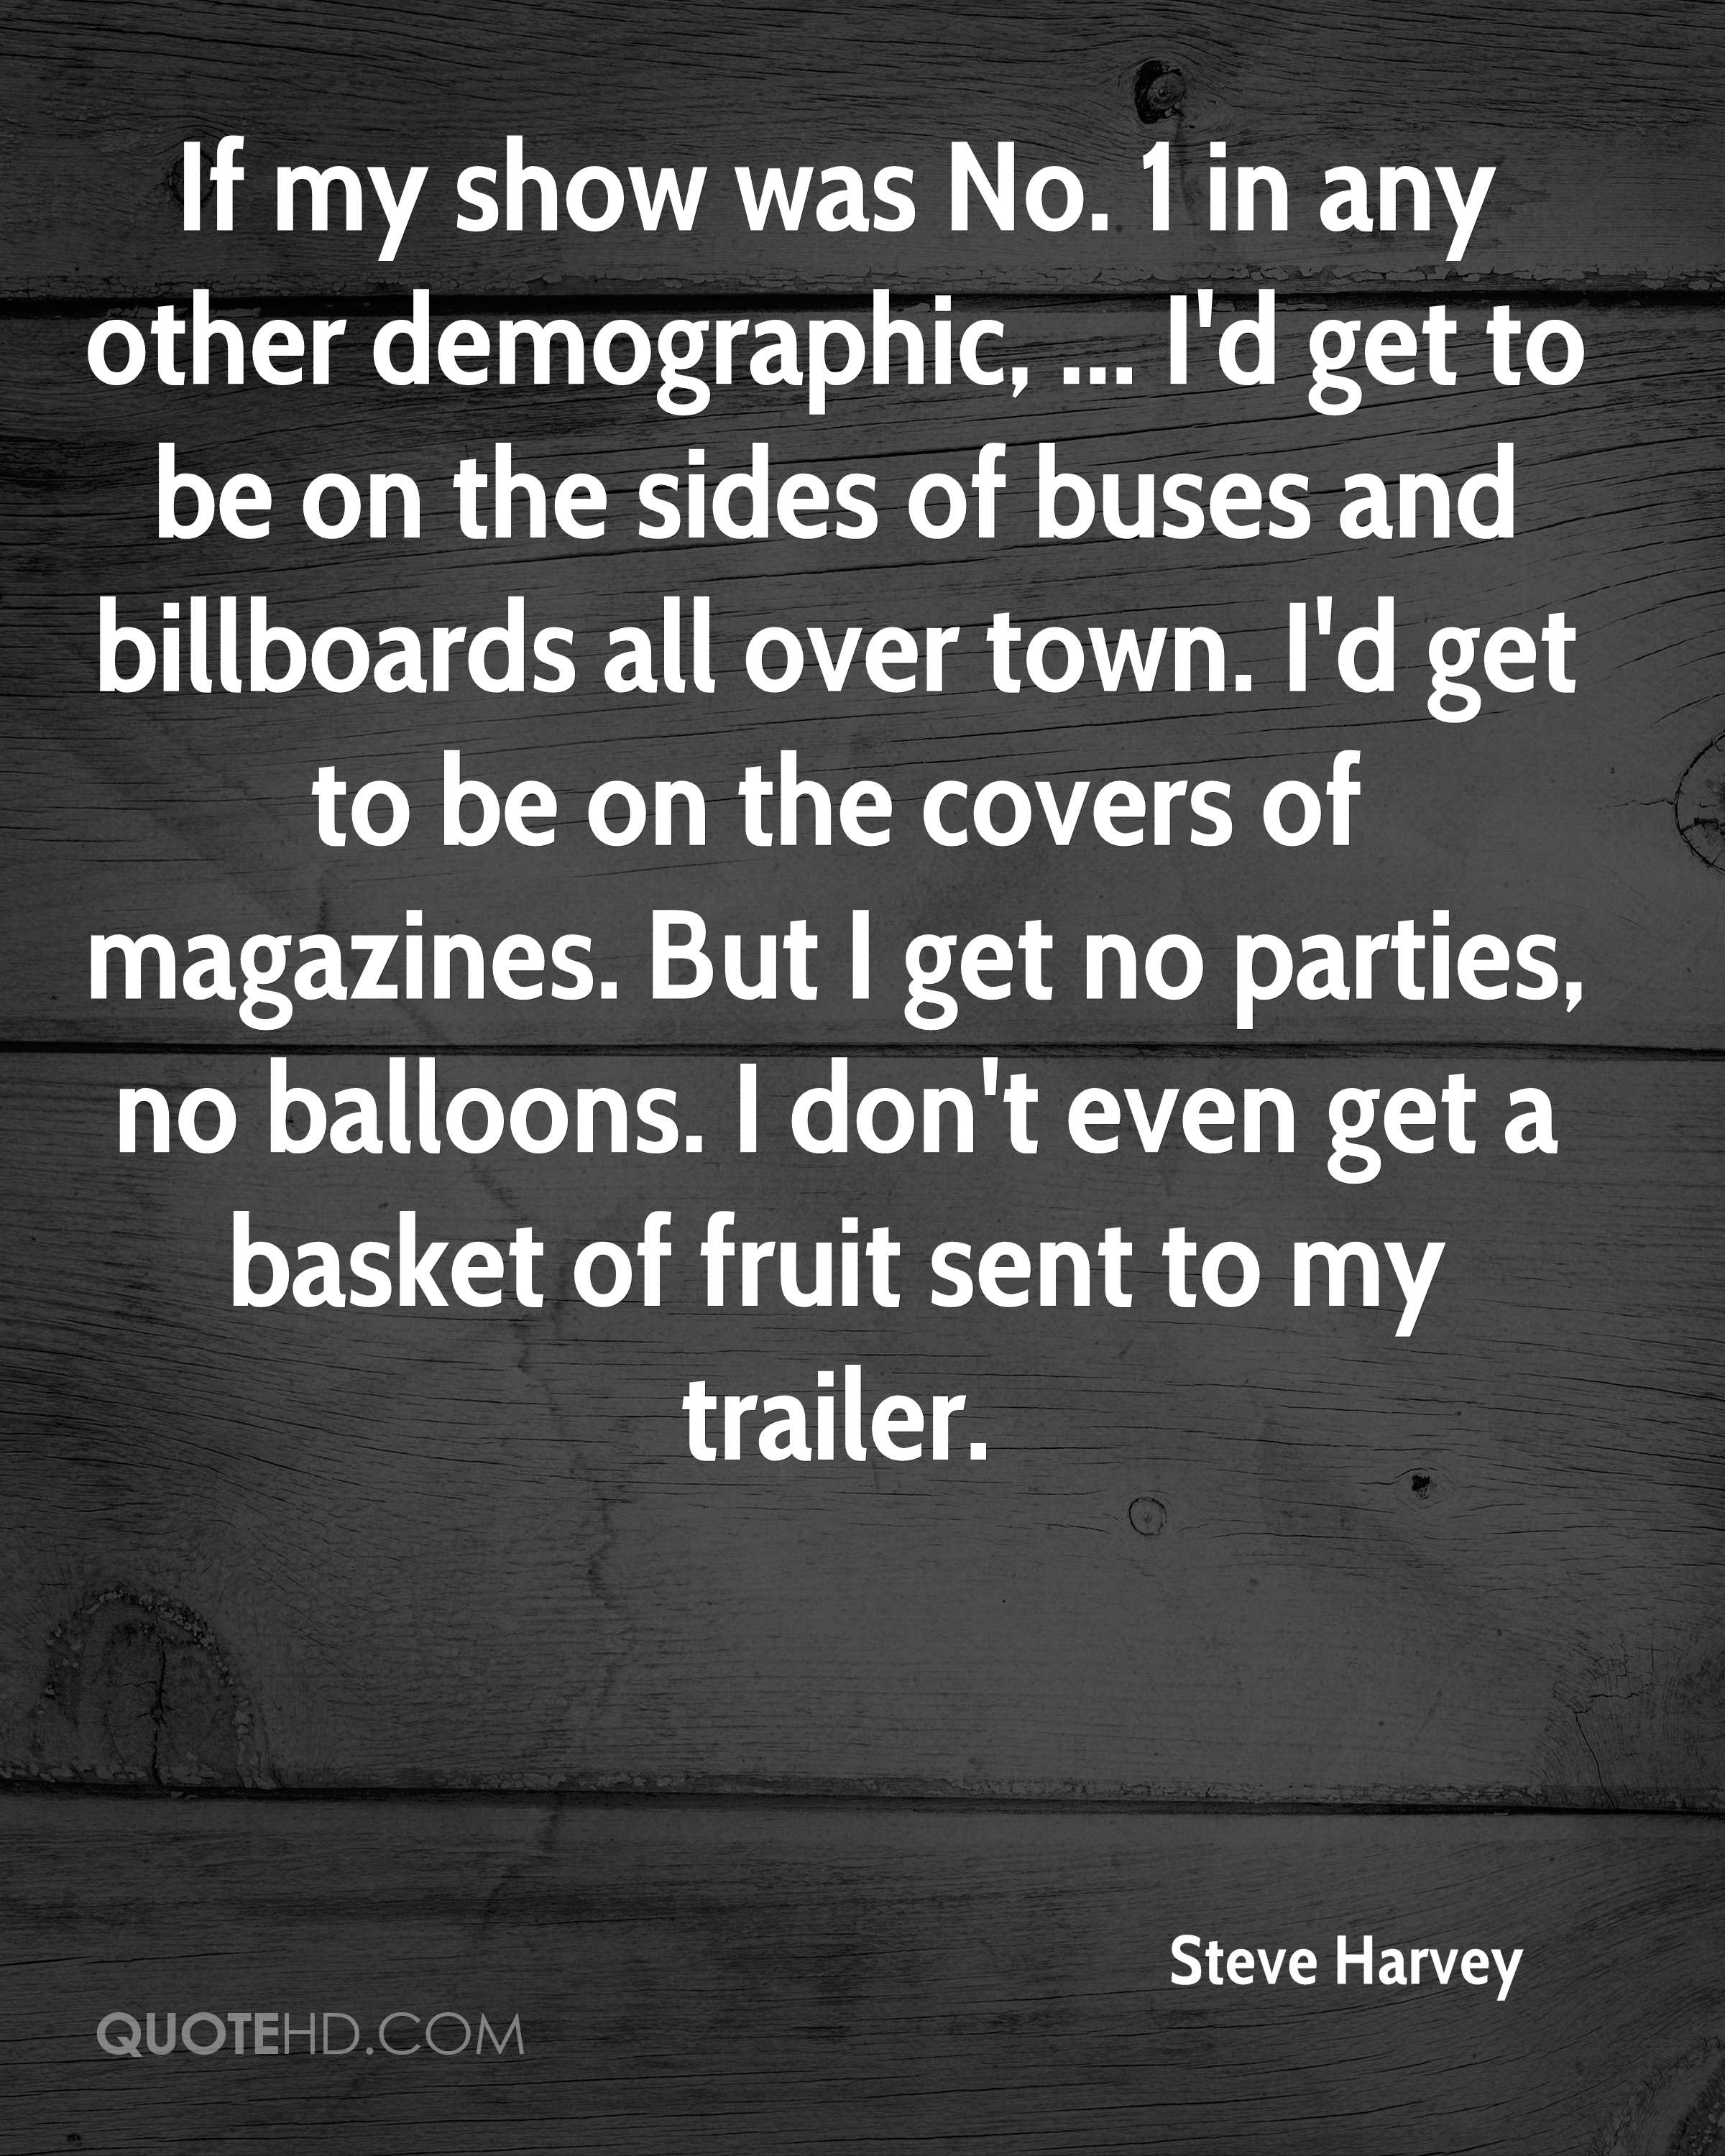 If my show was No. 1 in any other demographic, ... I'd get to be on the sides of buses and billboards all over town. I'd get to be on the covers of magazines. But I get no parties, no balloons. I don't even get a basket of fruit sent to my trailer.